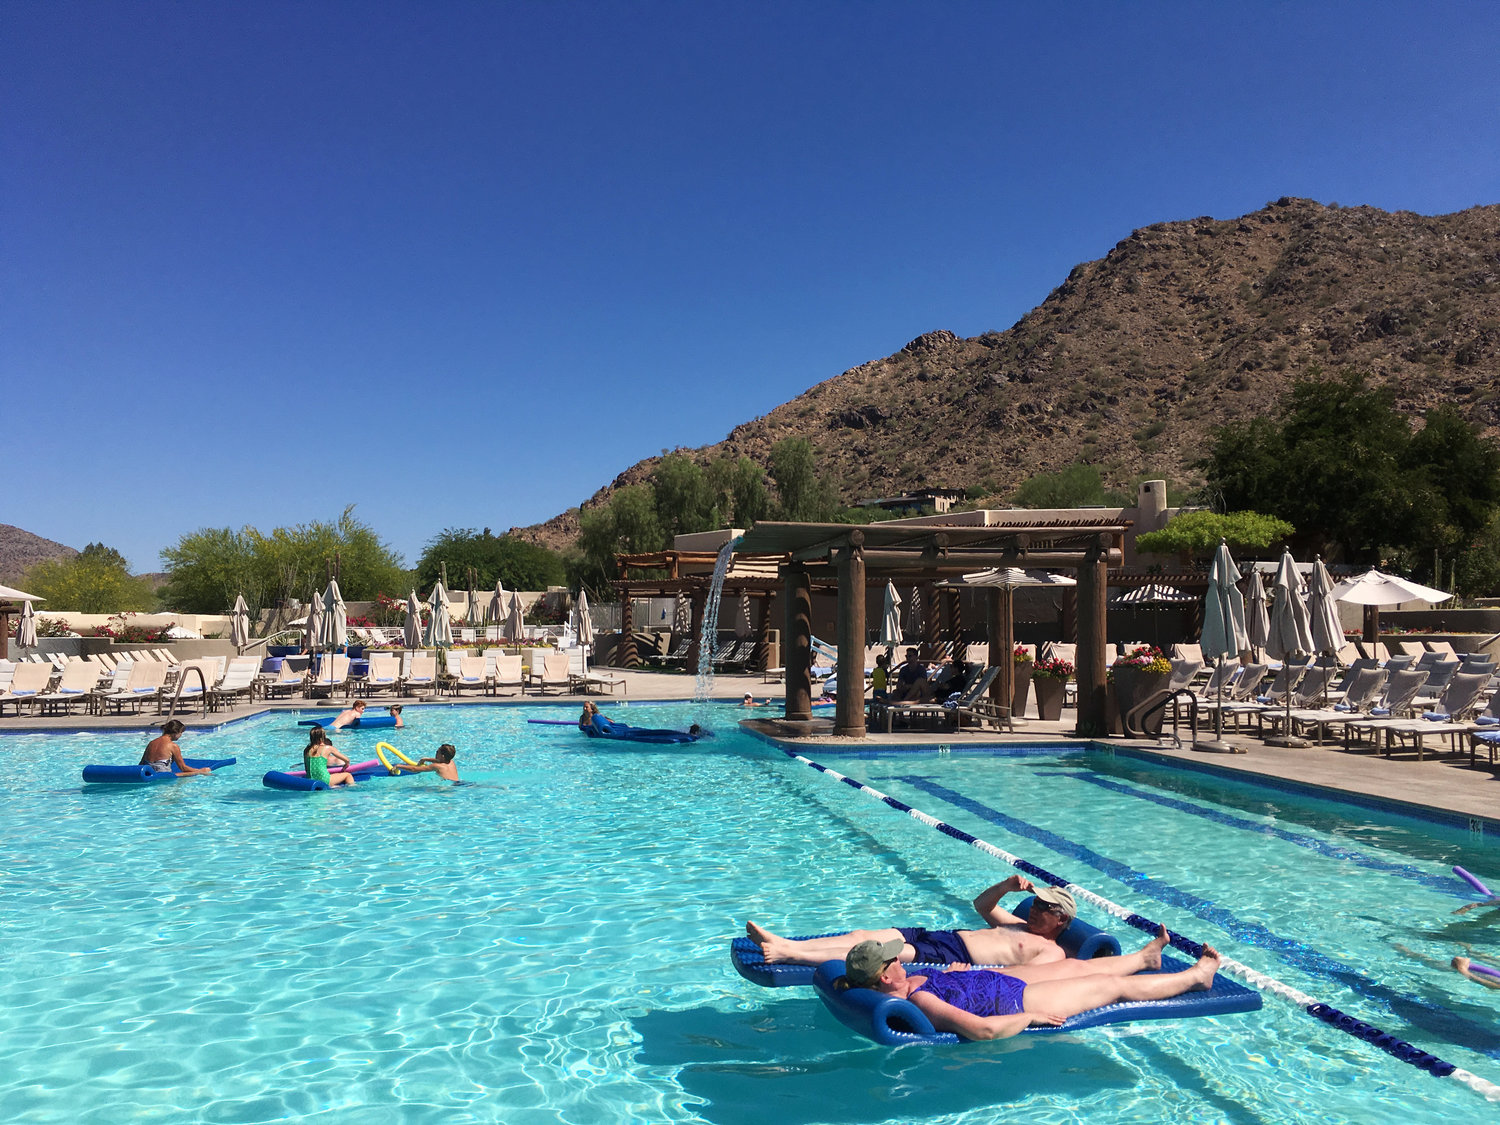 Hotel guests cool off at the pool at the JW Marriott Scottsdale Camelback Inn Resort and Spa in Paradise Valley on Sunday, June 19, 2016.